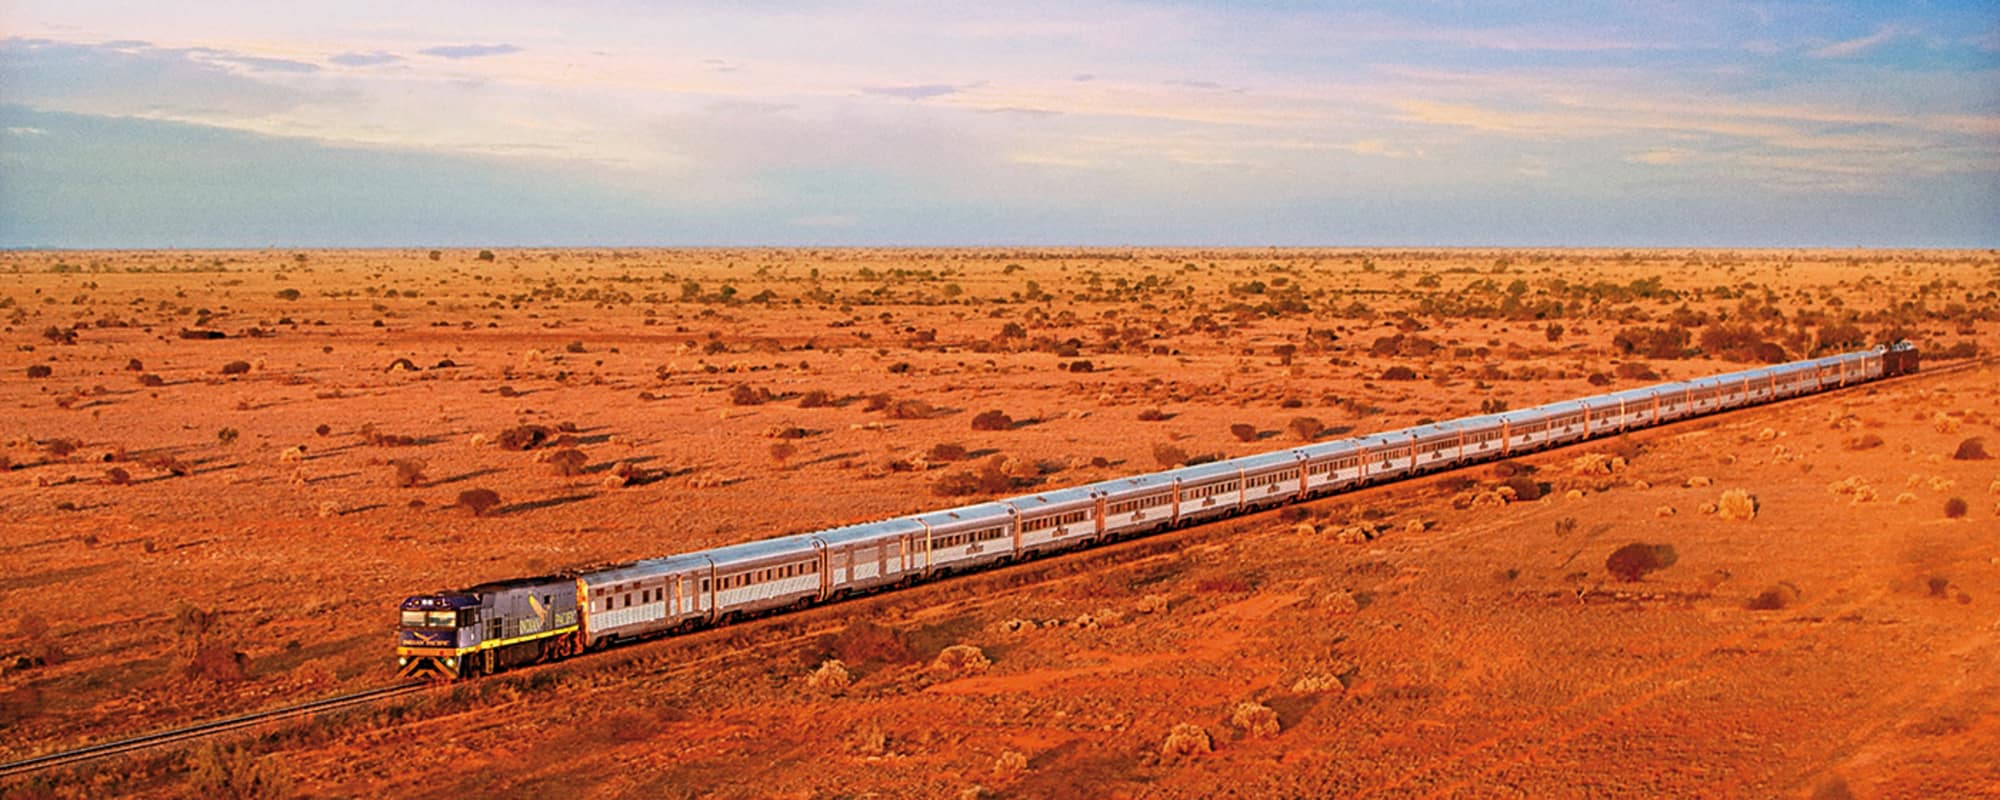 The Indian Pacific, Transaustralische Eisenbahn, Zug, Luxusreise, Perth, Sidney